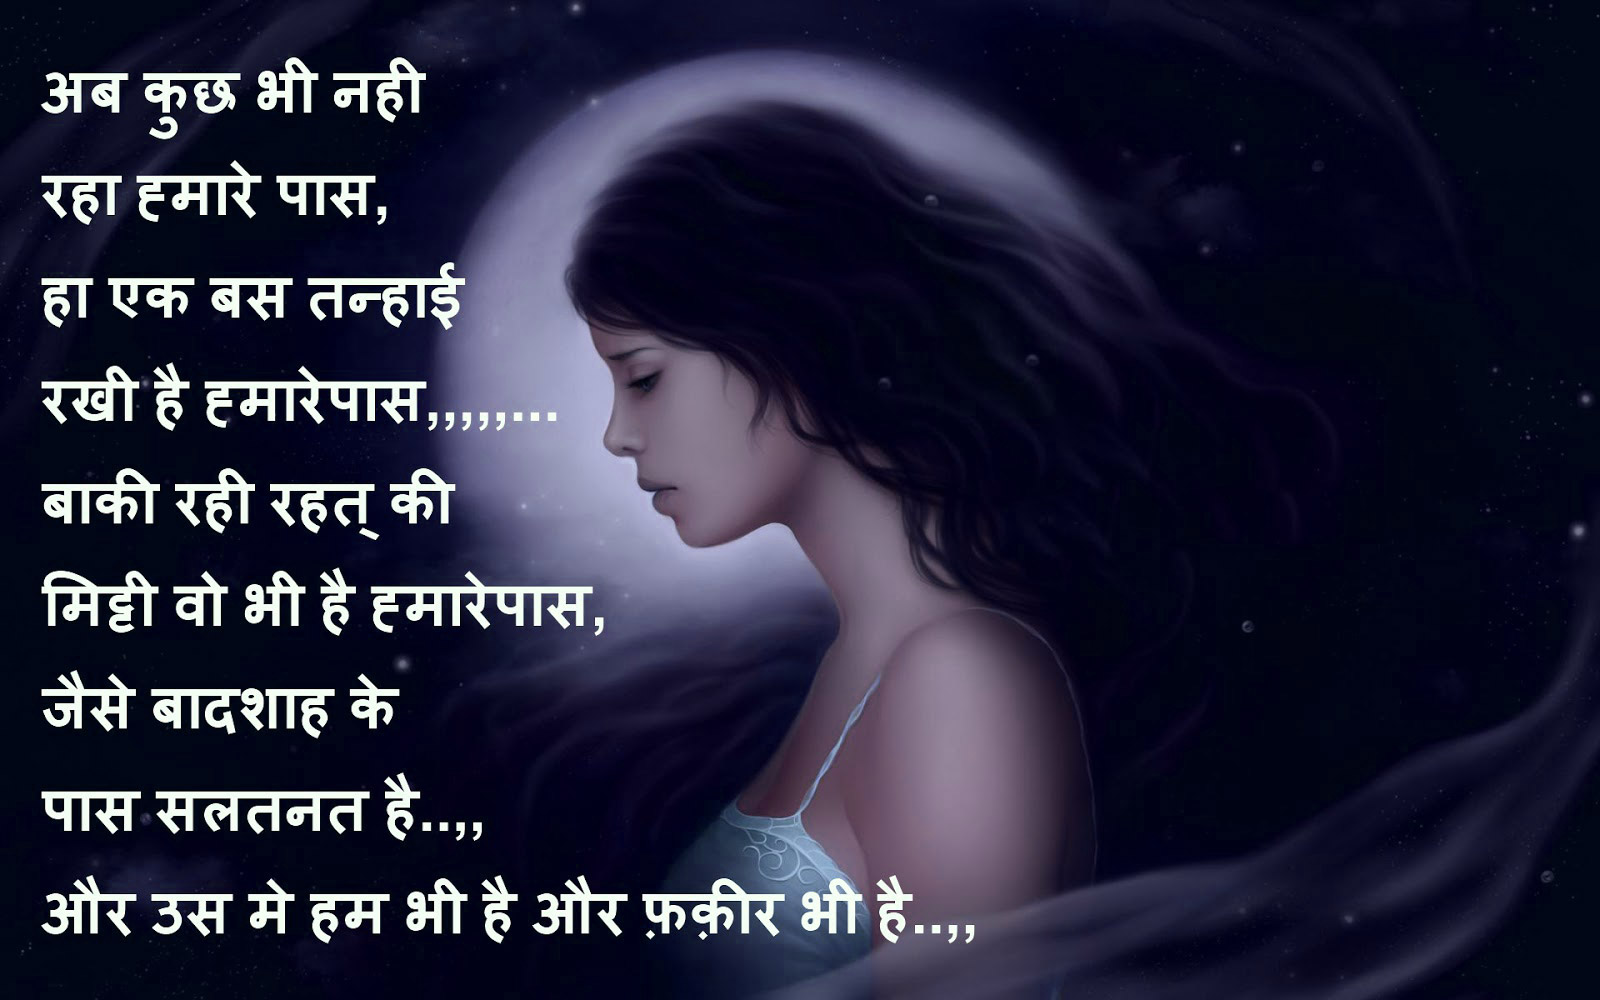 True Love Shayari Images Wallpaper Photo Pics Download HD